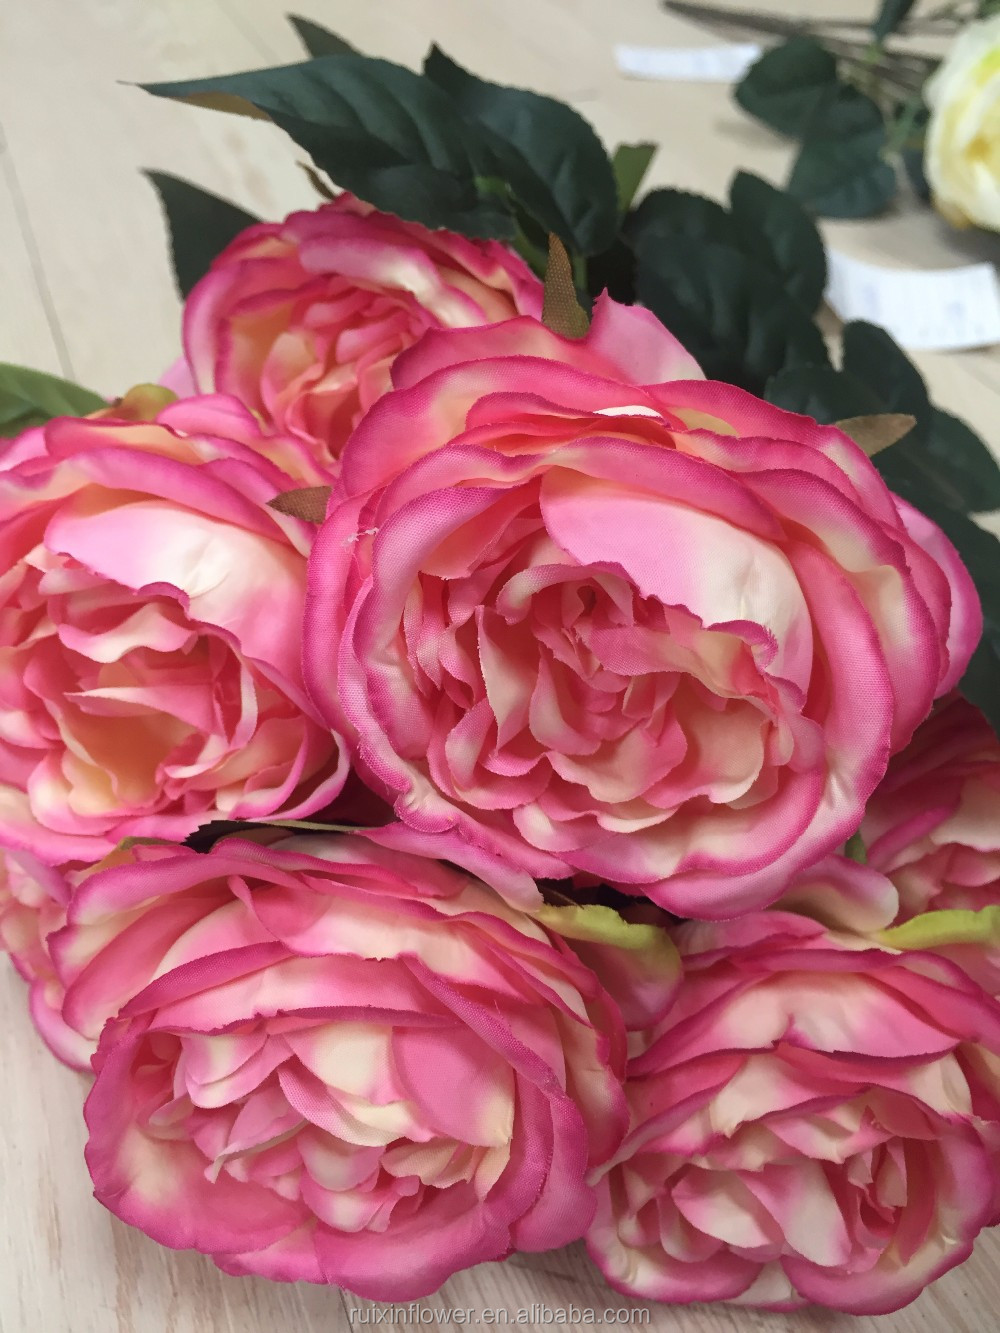 Artificial Rose bouquet Natural Touch Artificial Silk Flower For Weddings Decoration